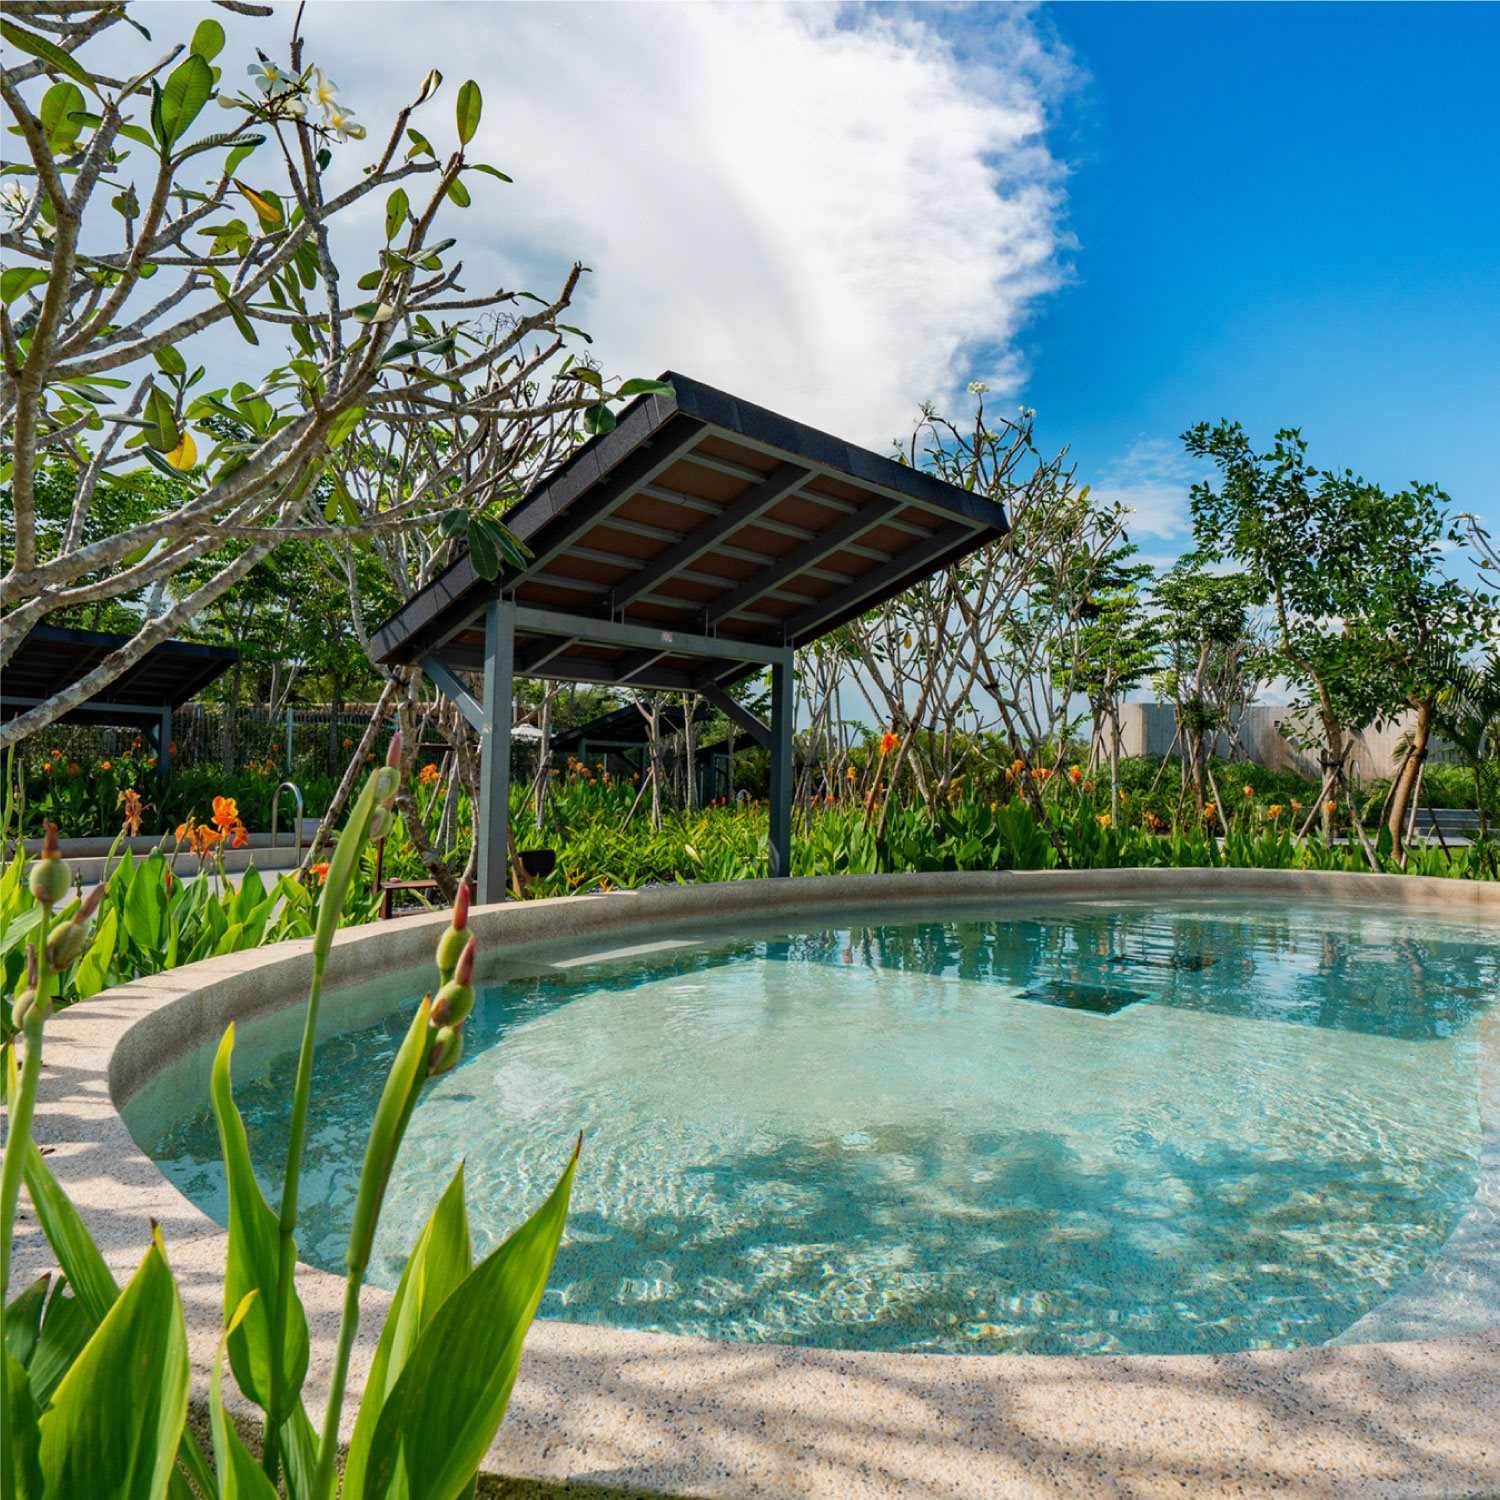 Image of a outdoor pool at Minera Hot Springs Binh Chau in Vietnam